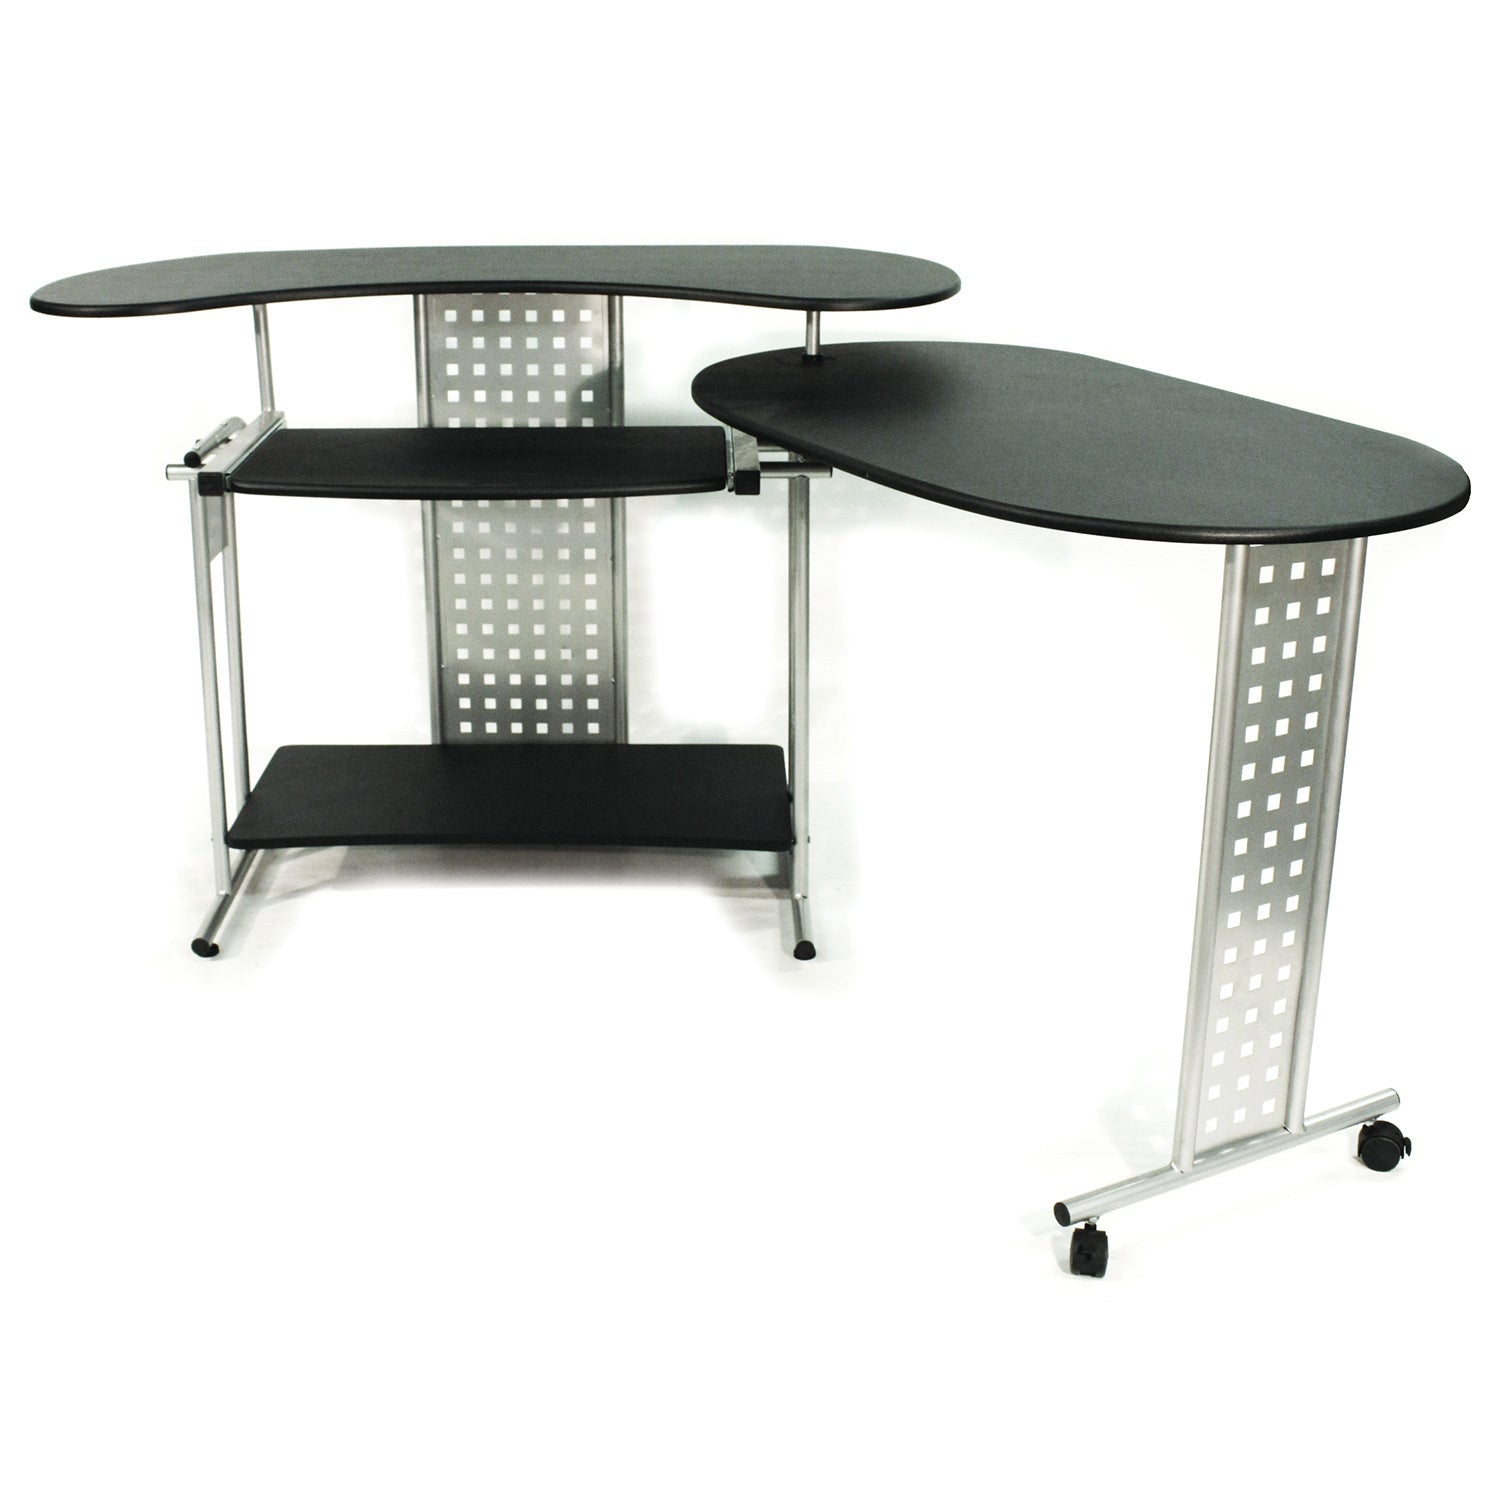 desk lane benching david expandable office adjustable customizable metal system desks fully height